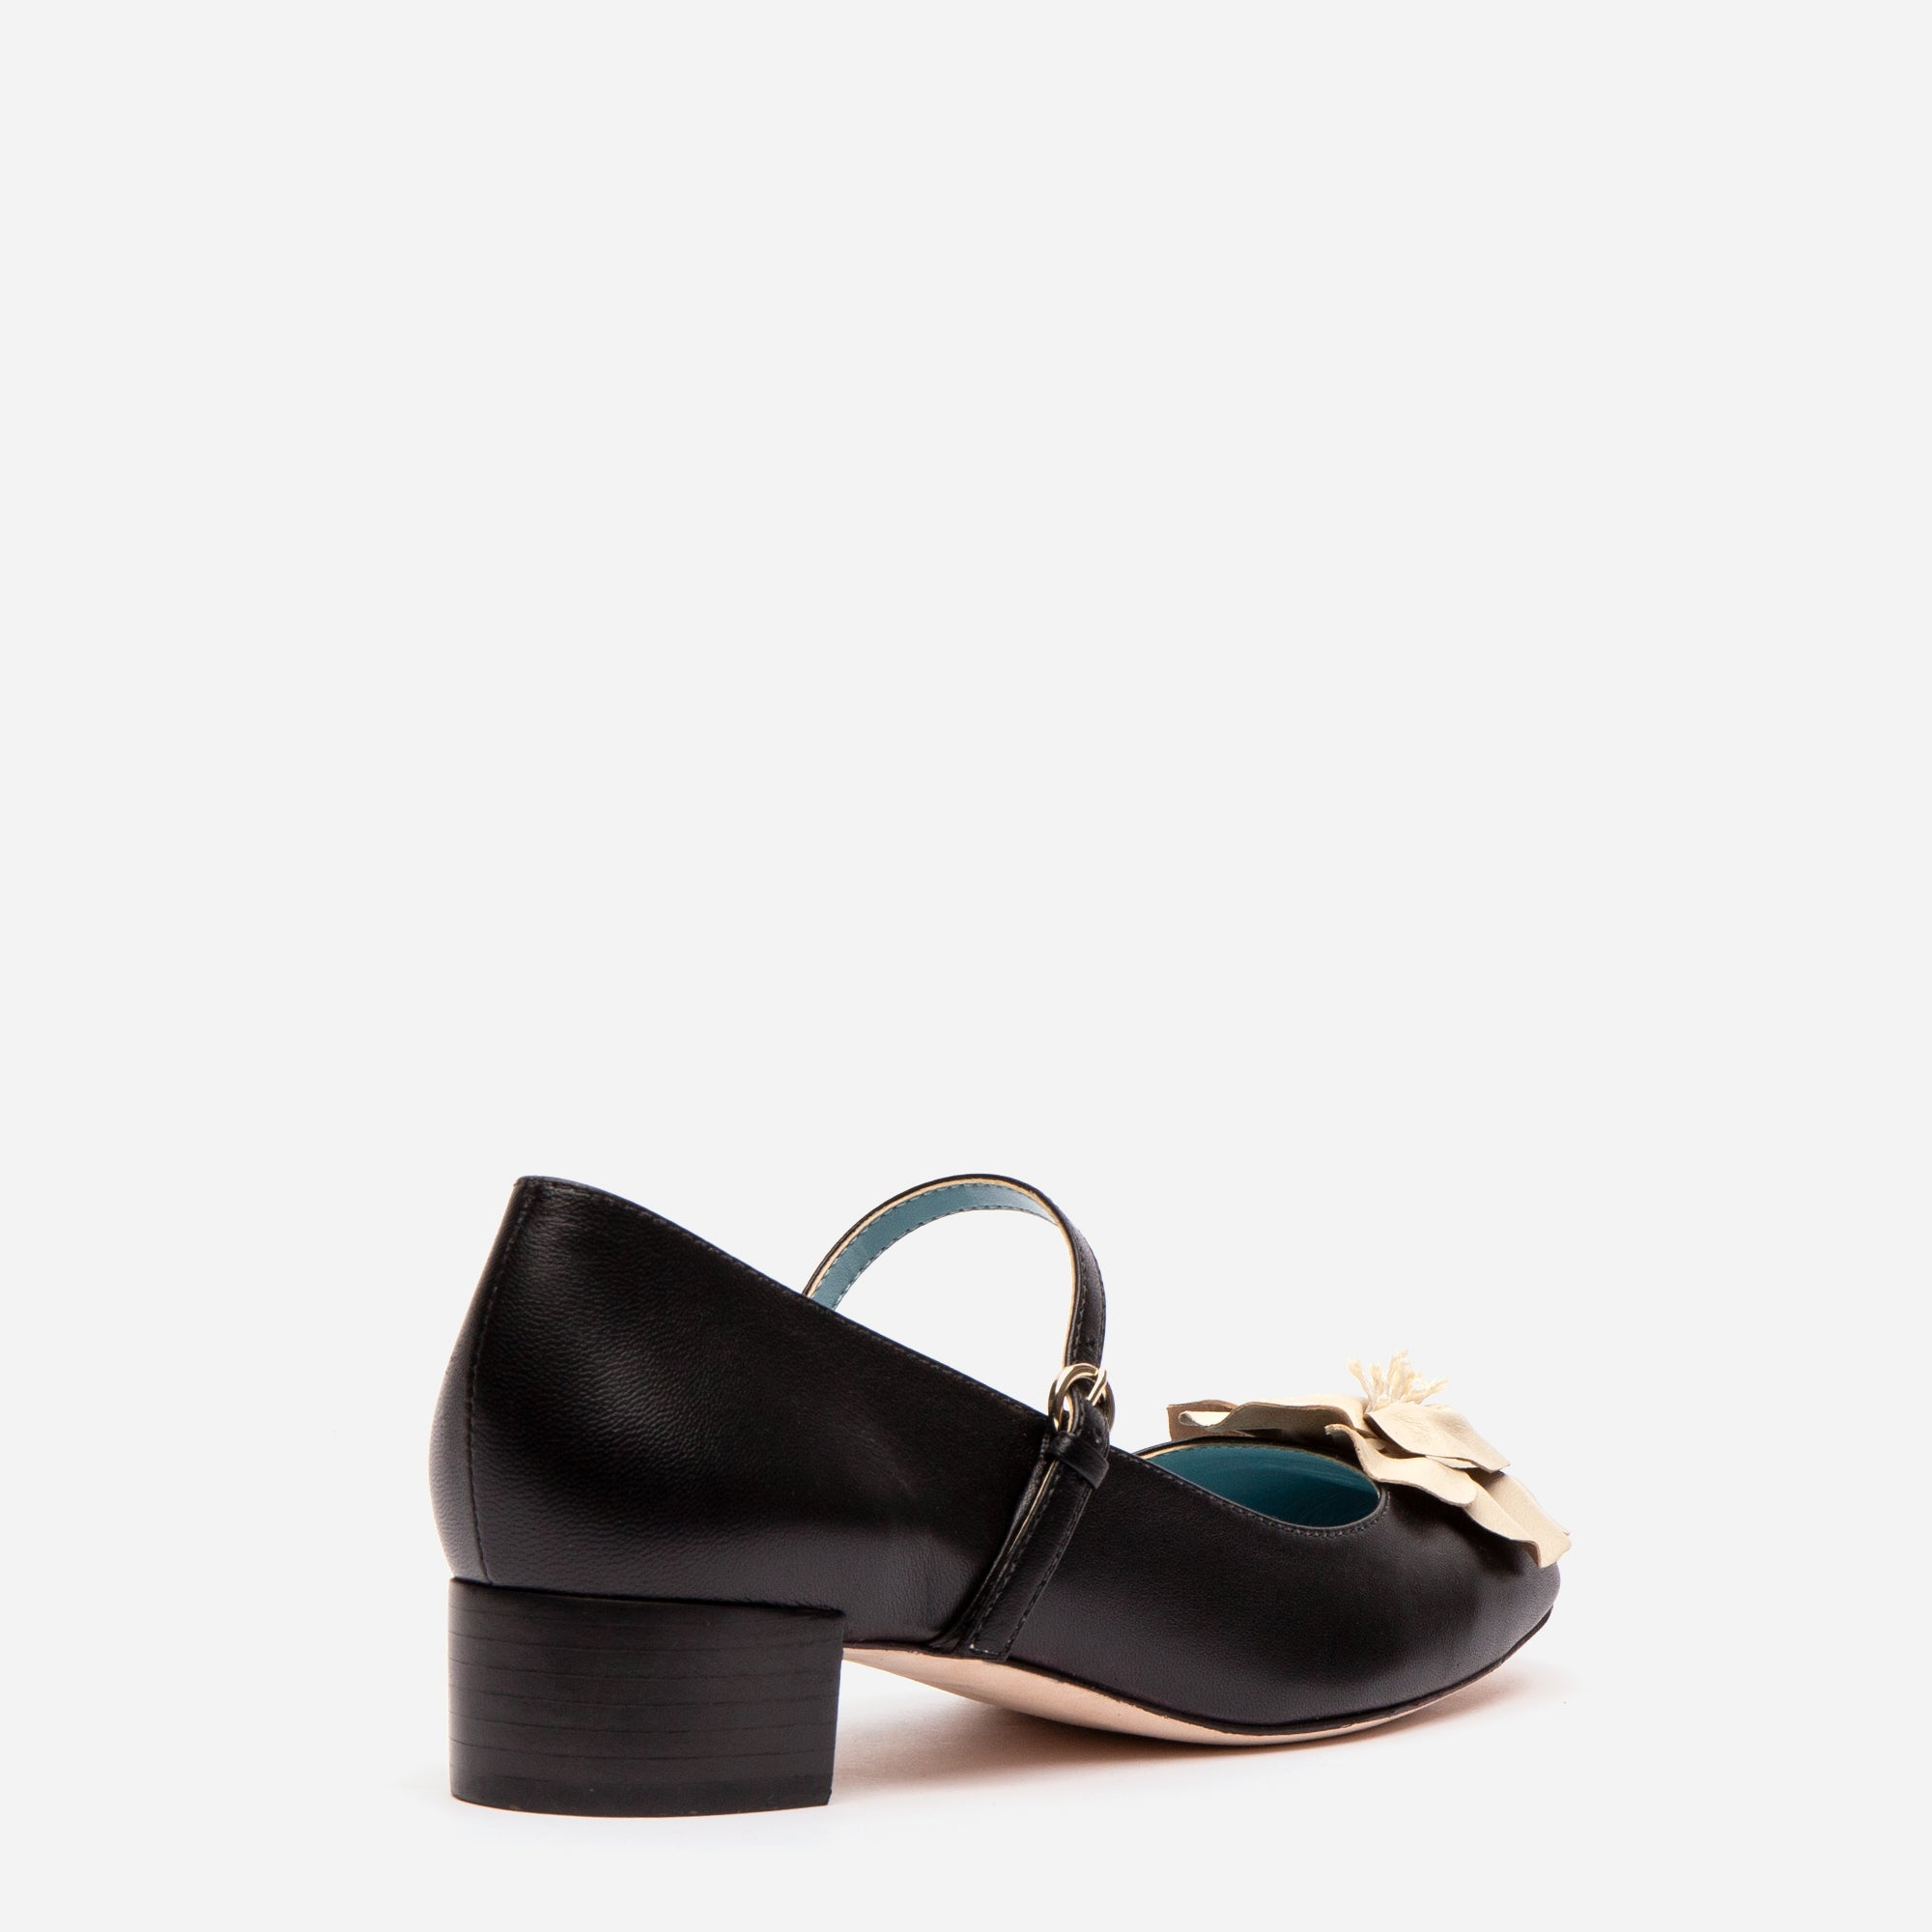 Babe Mary Jane Heels Black Oyster